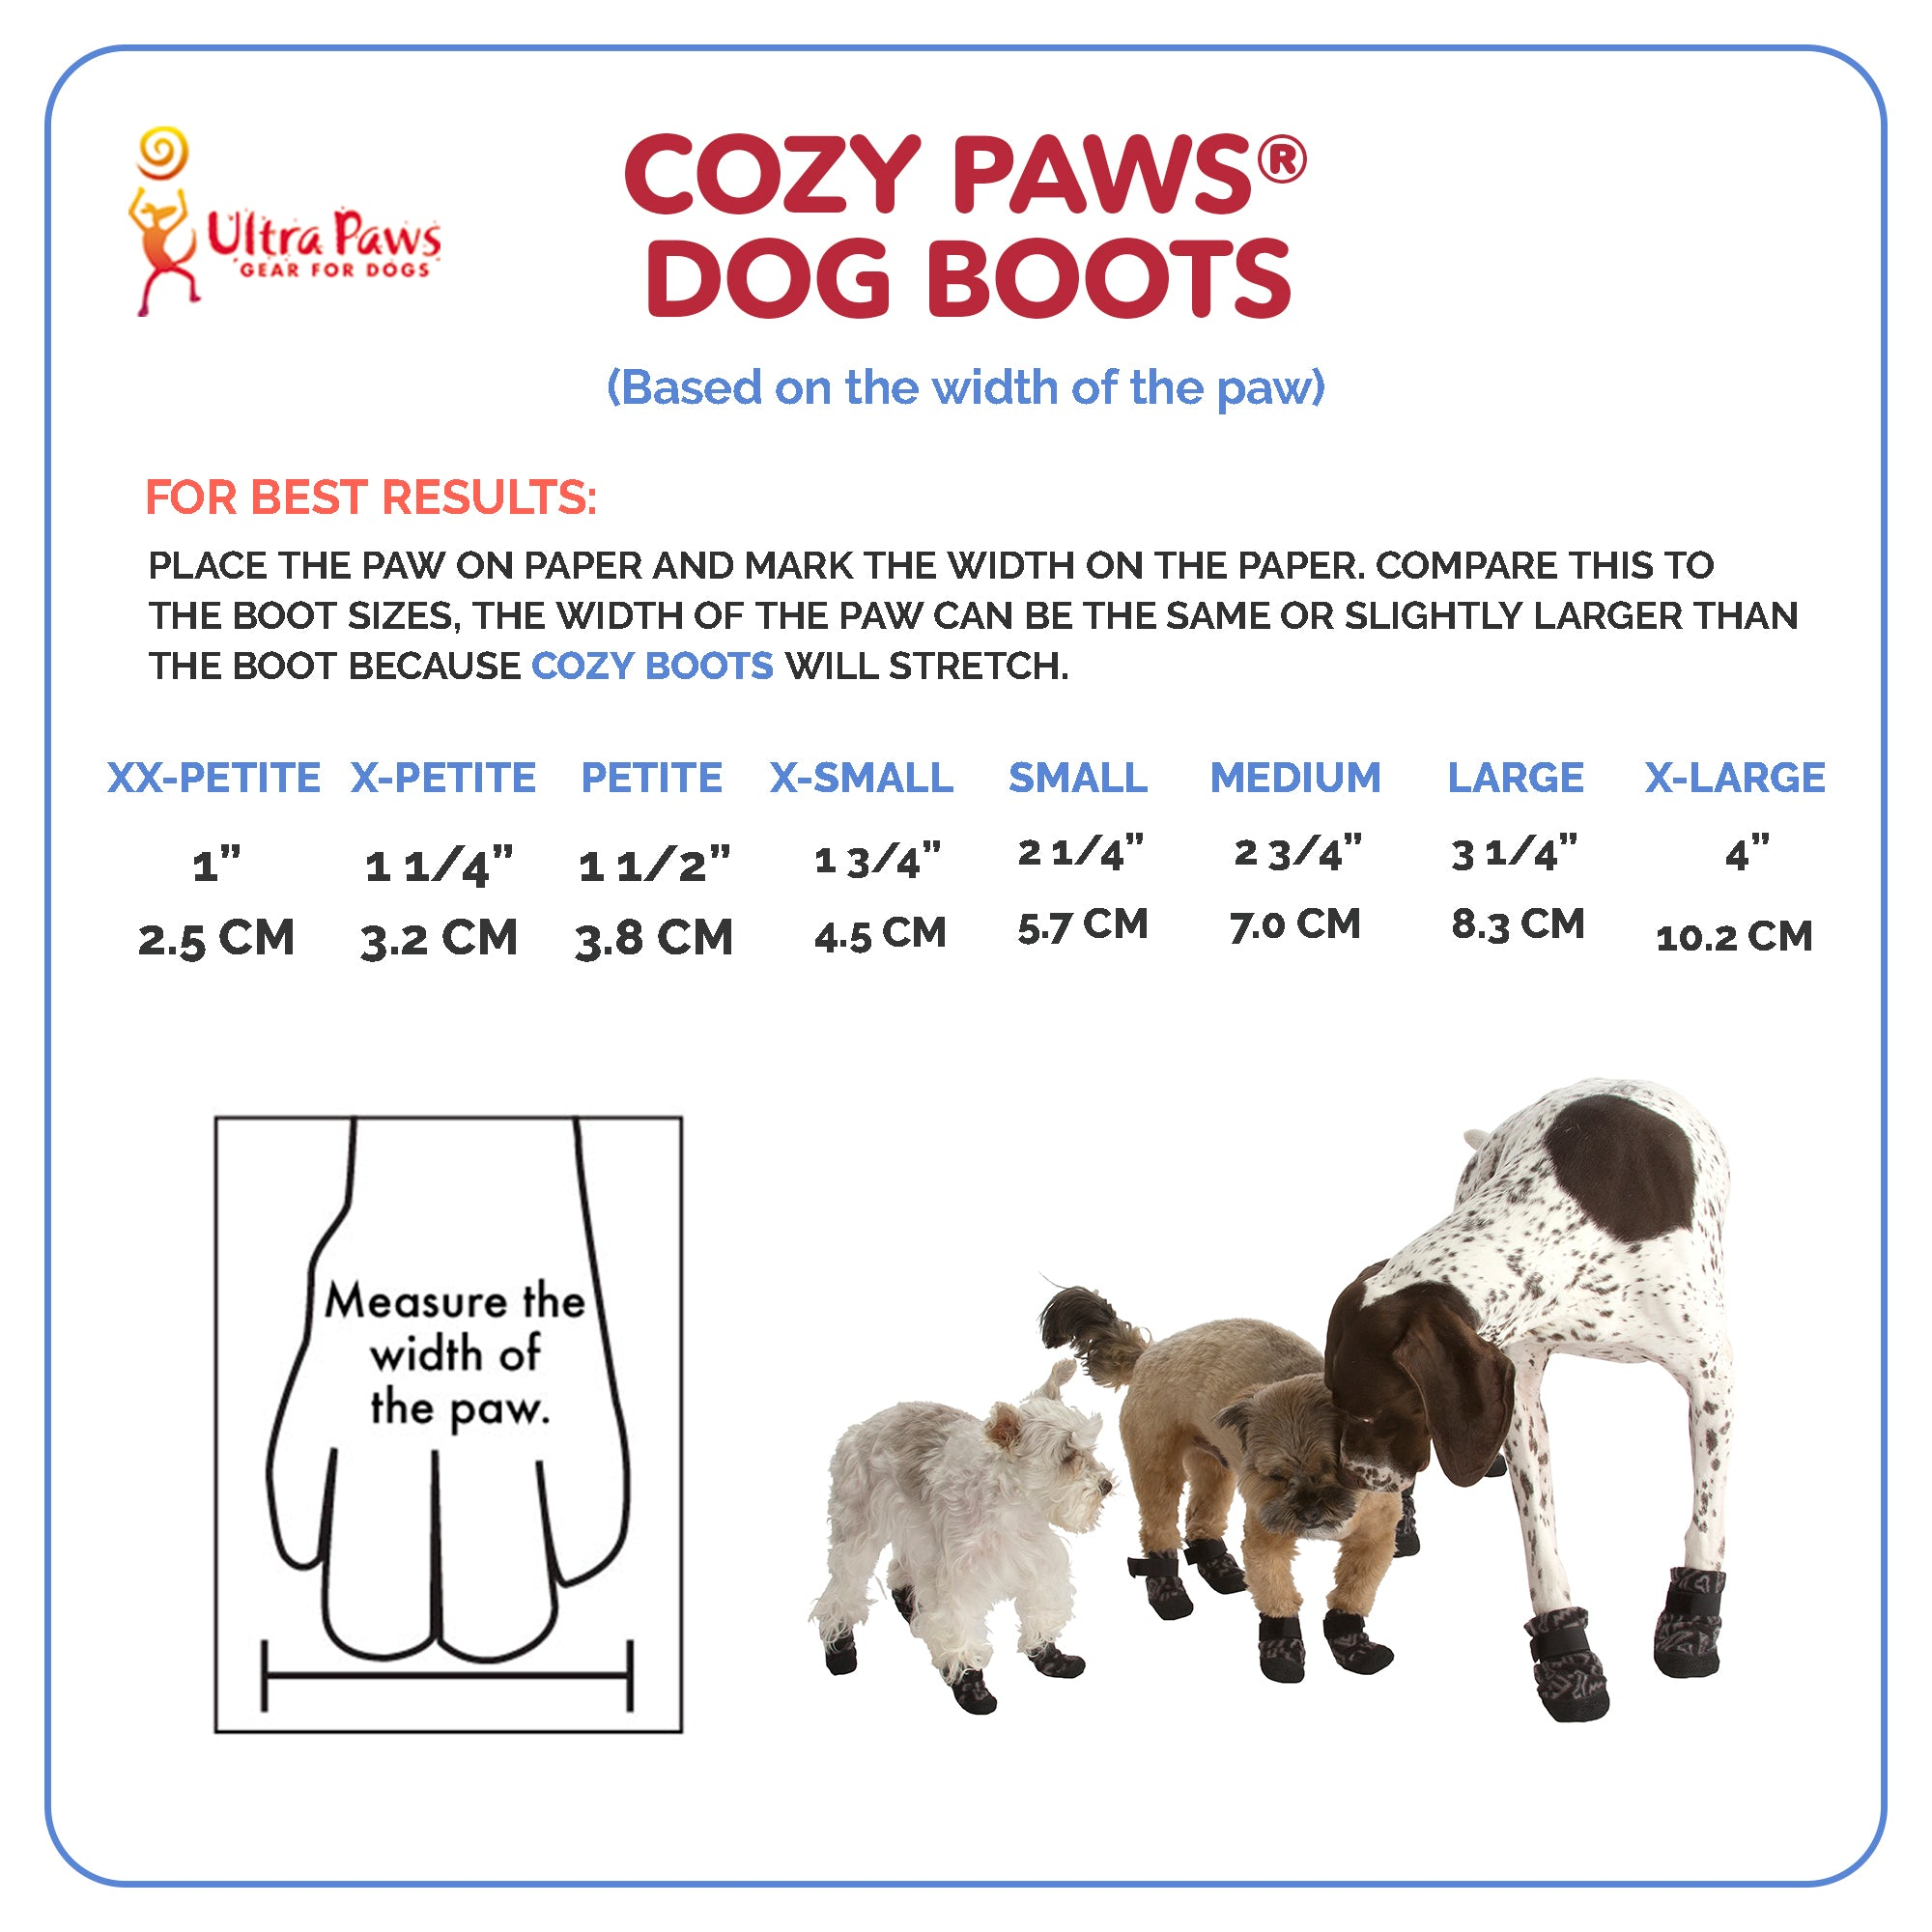 Ultra Paws Cozy Paws® Dog Boot Sizing Chart